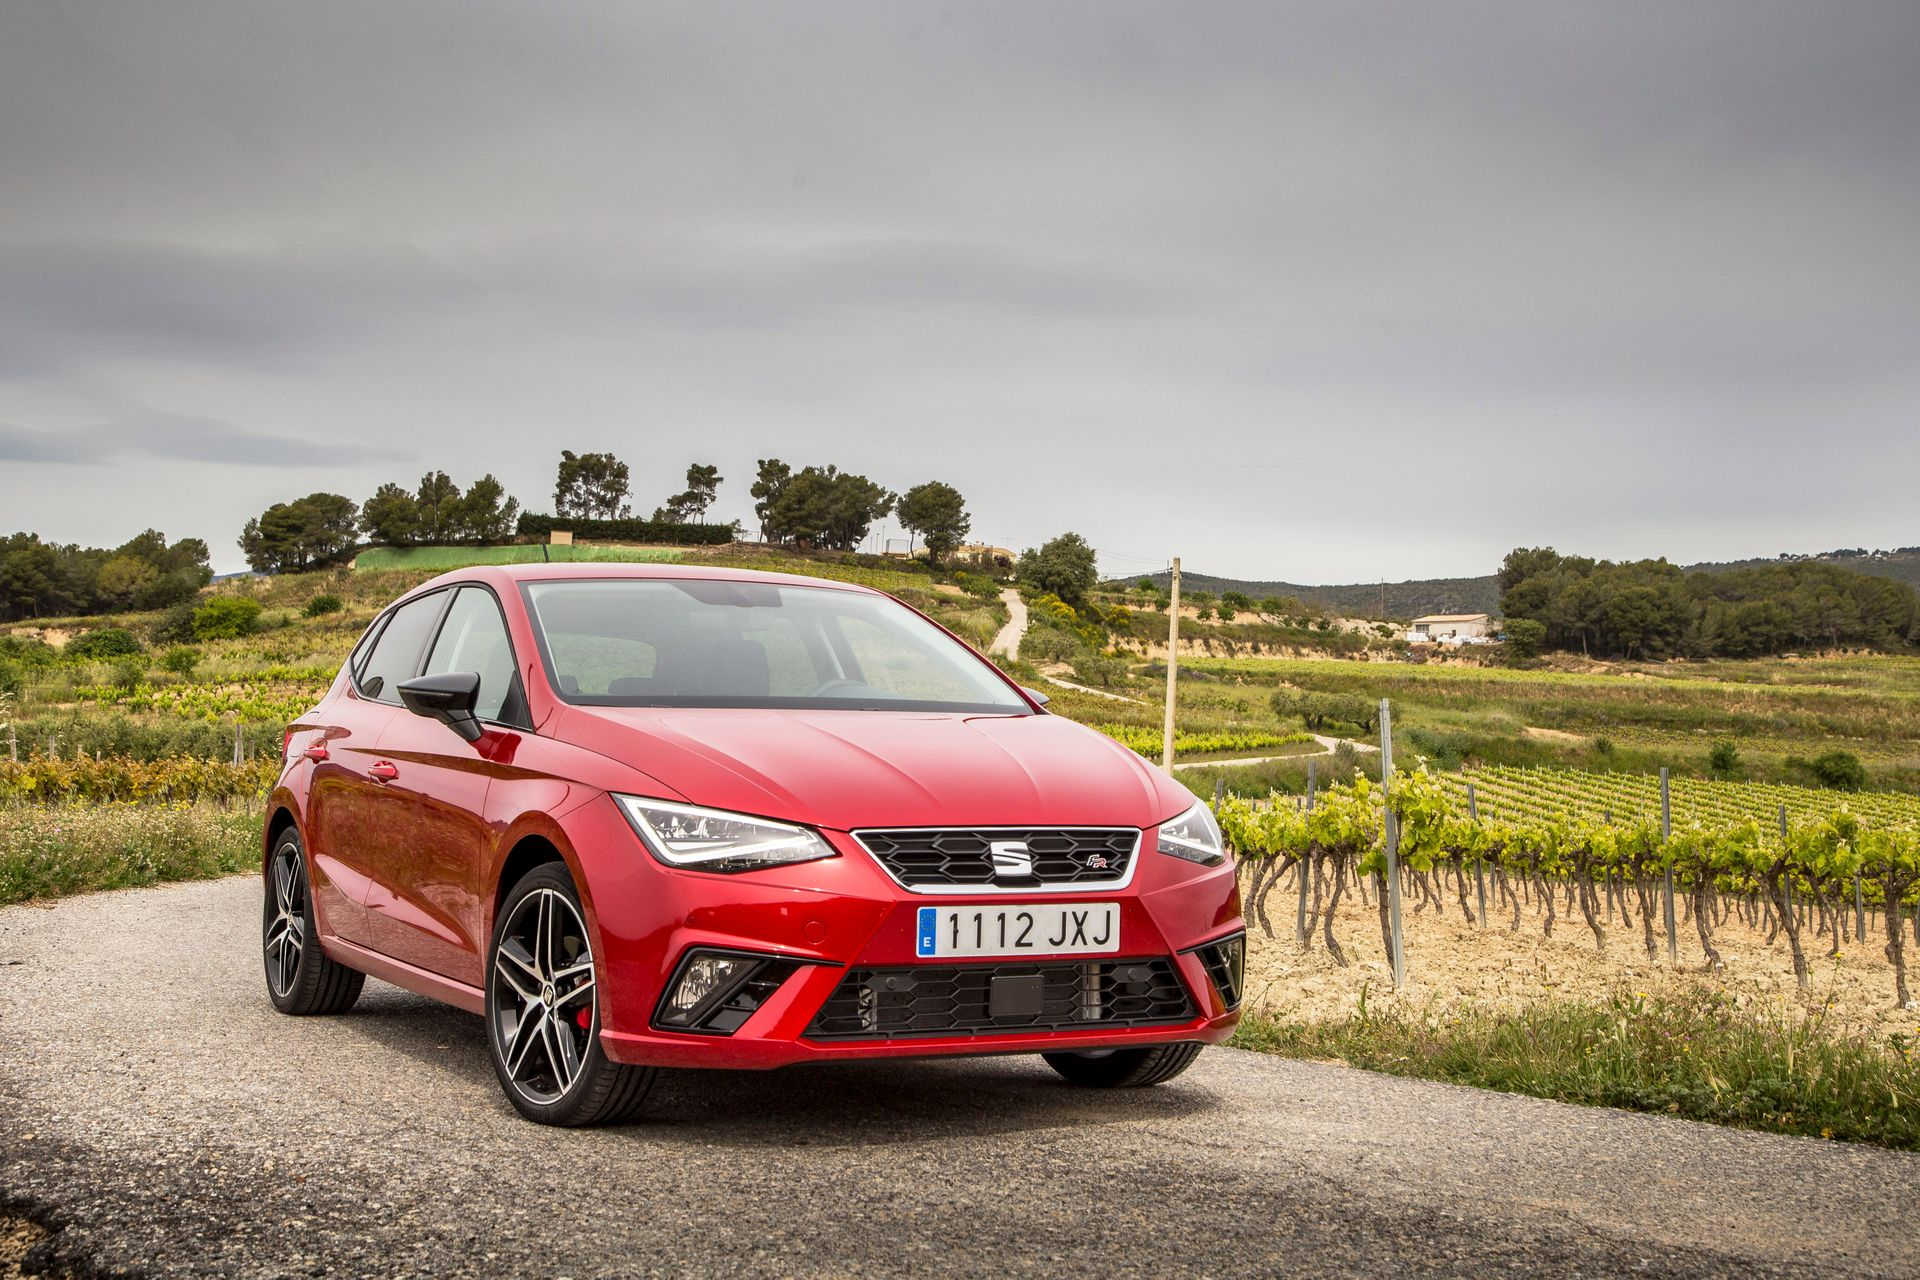 seat ibiza fr the new seat ibiza fr edition only motors seat ibiza fr photos 13 on better. Black Bedroom Furniture Sets. Home Design Ideas